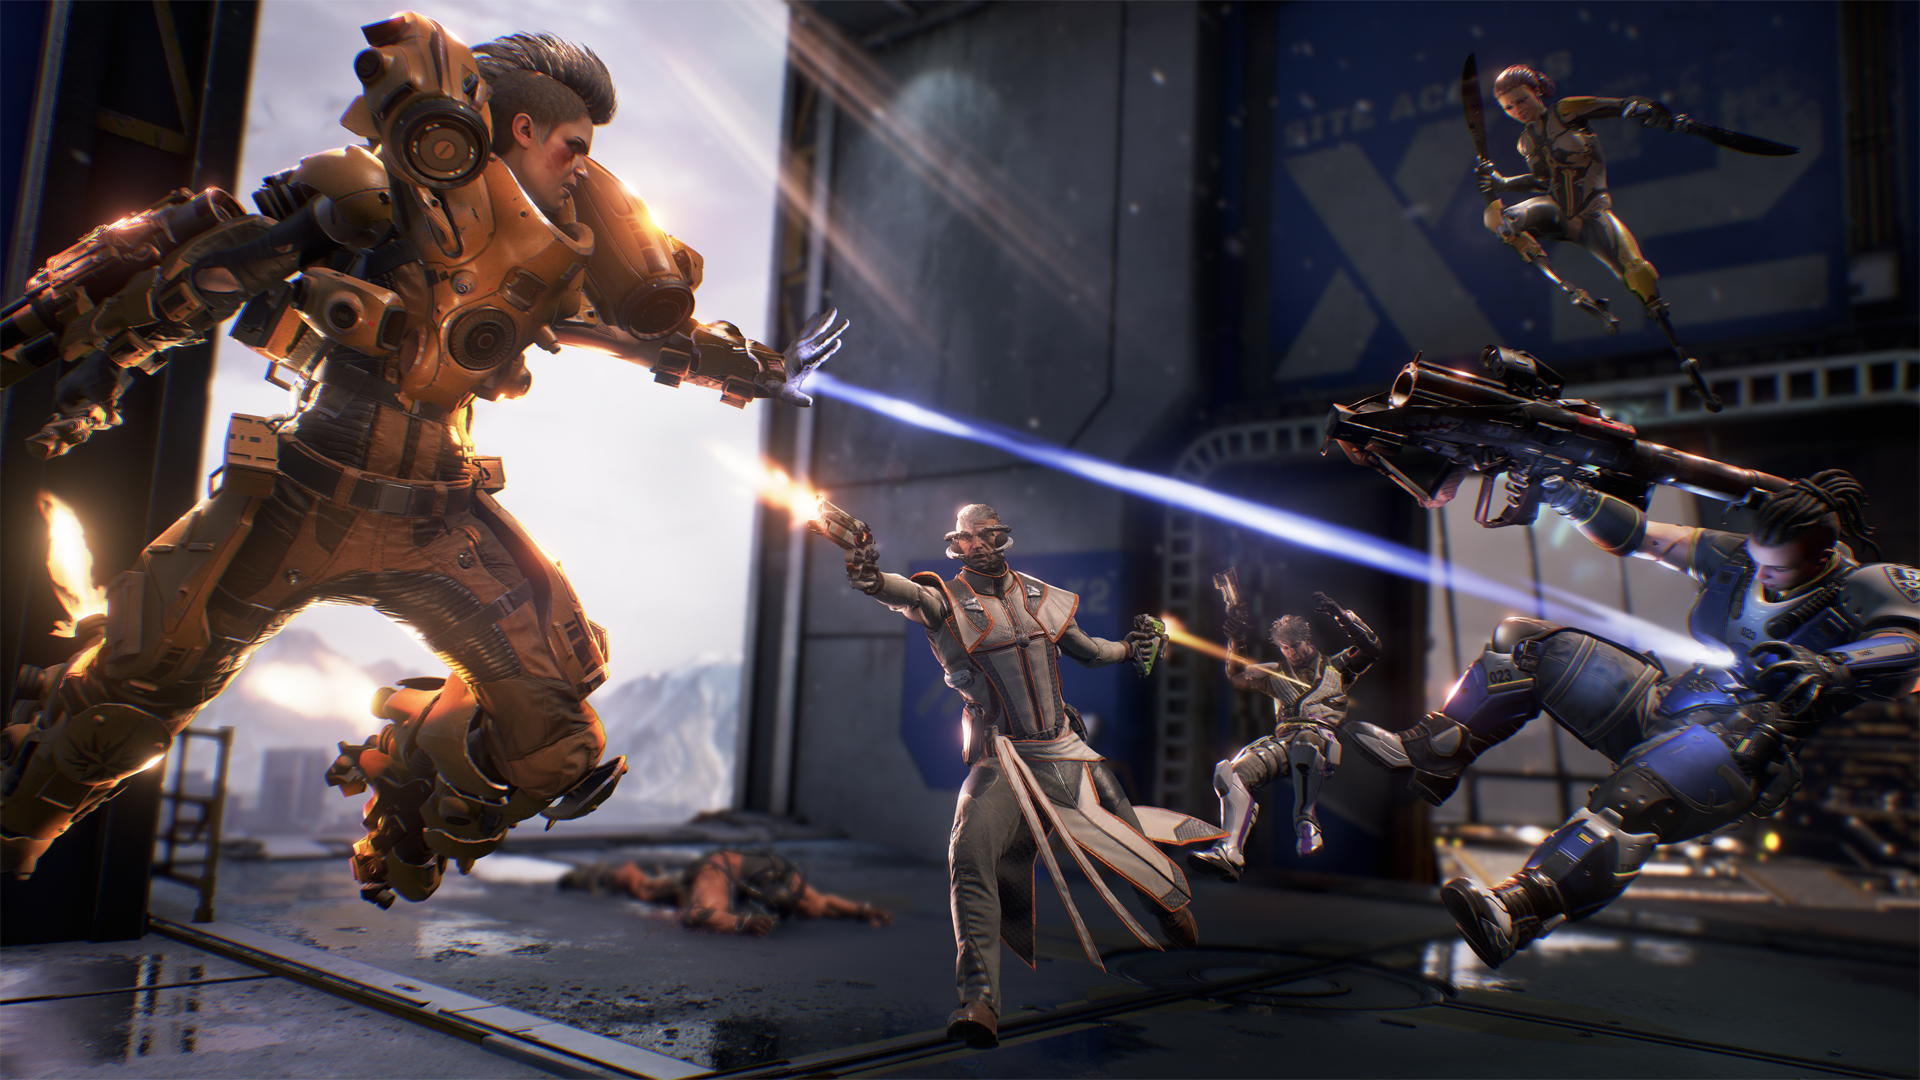 Lawbreakers Will Officially Launch On PlayStation 4 And PC August 8